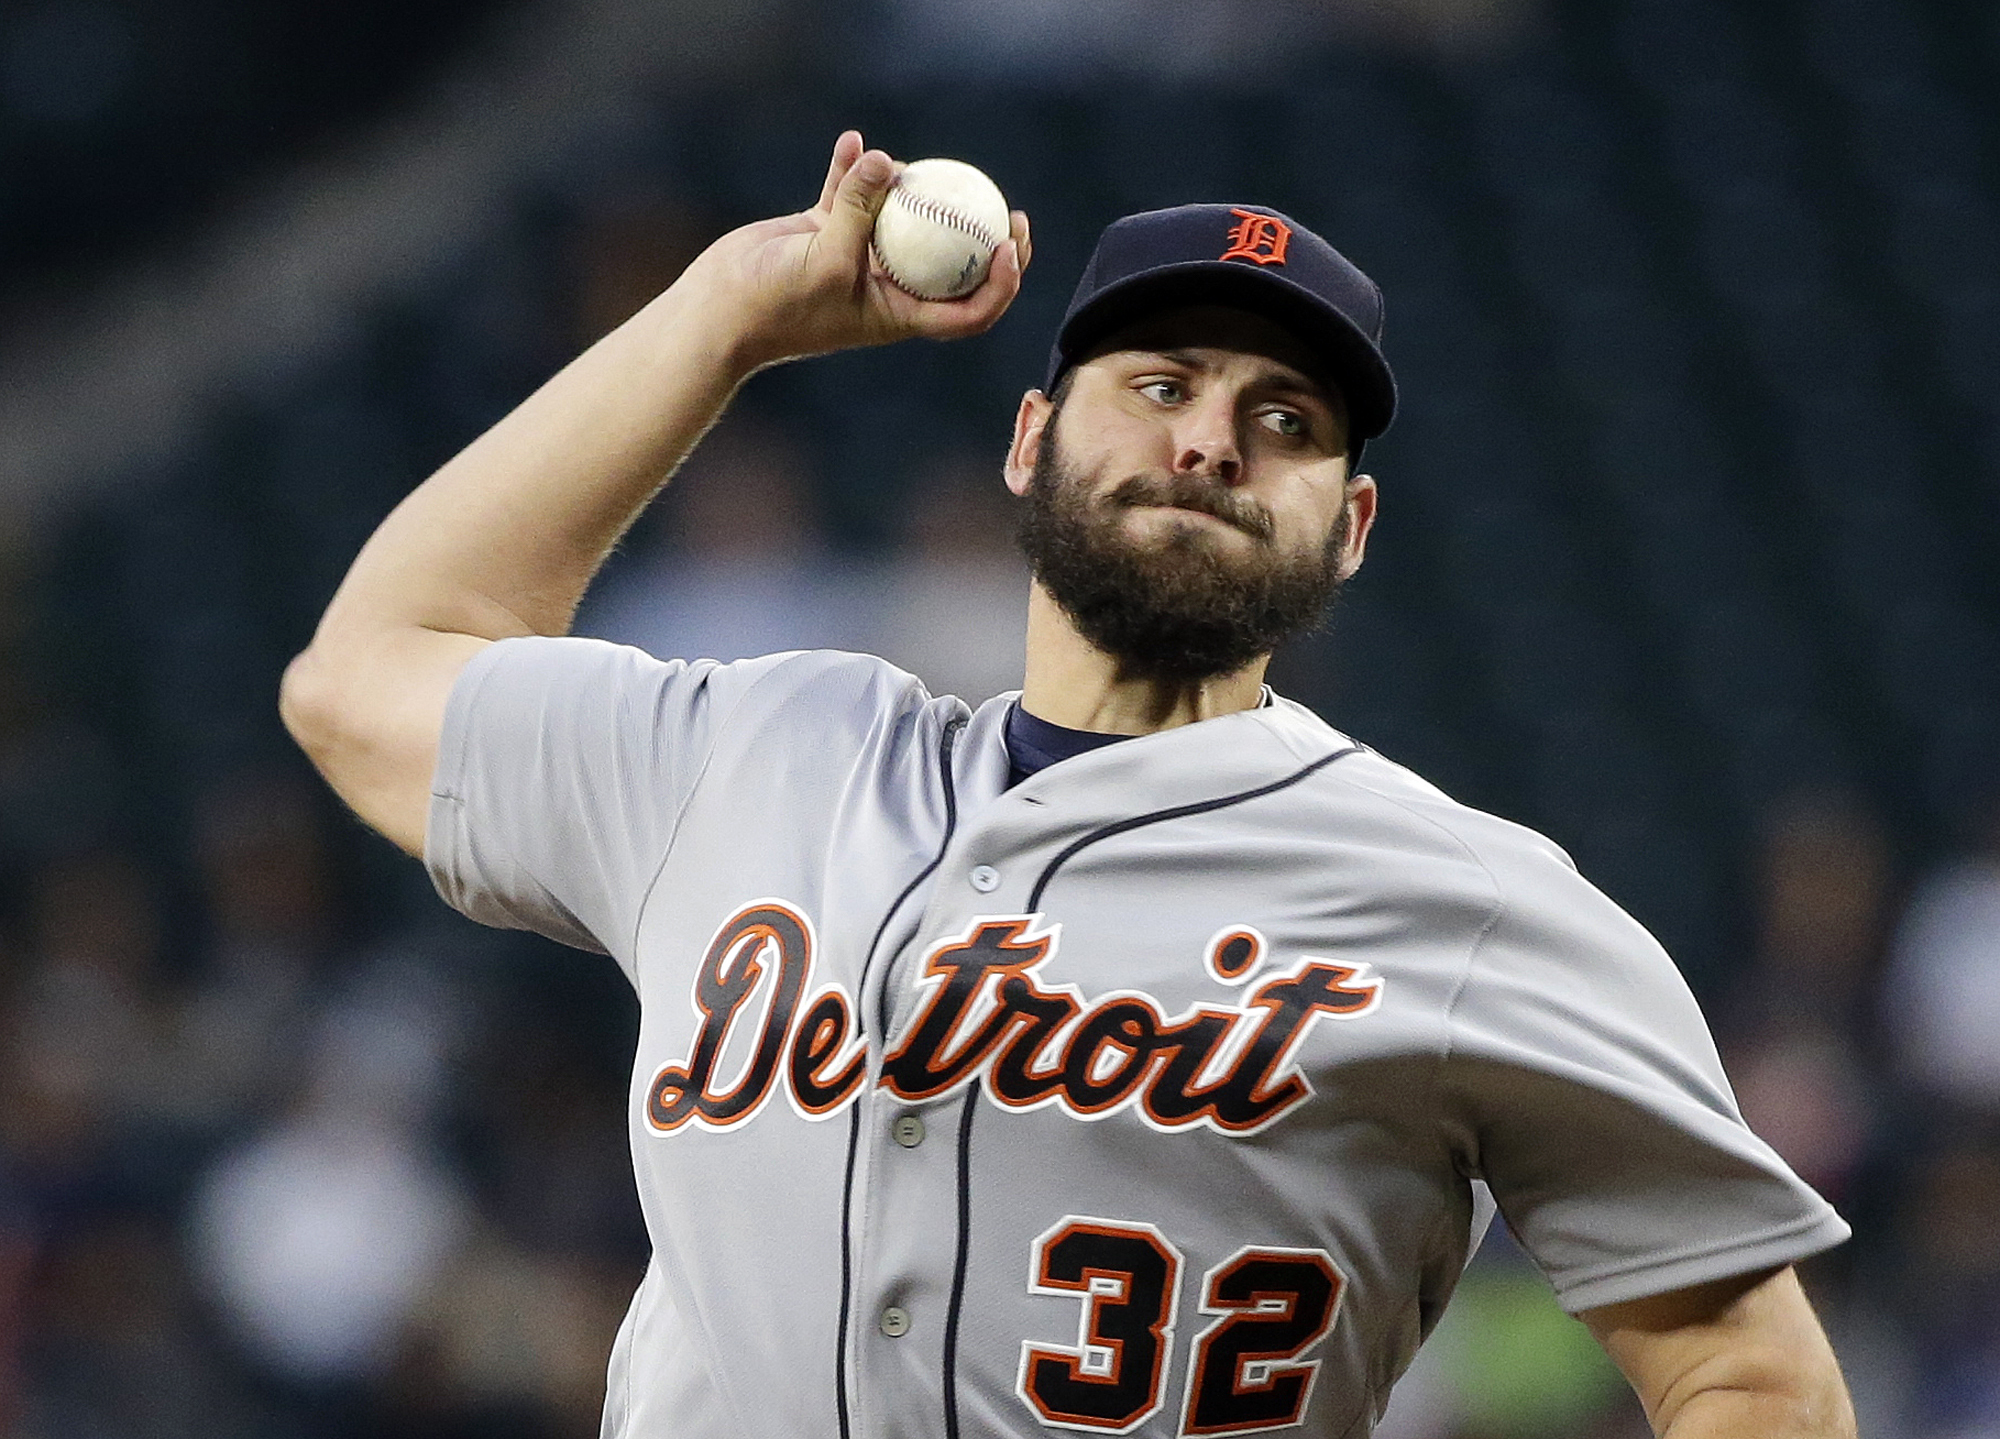 Detroit Tigers starting pitcher Michael Fulmer throws against the Seattle Mariners in the fourth inning of a baseball game, Monday, Aug. 8, 2016, in Seattle. (AP Photo/Elaine Thompson)